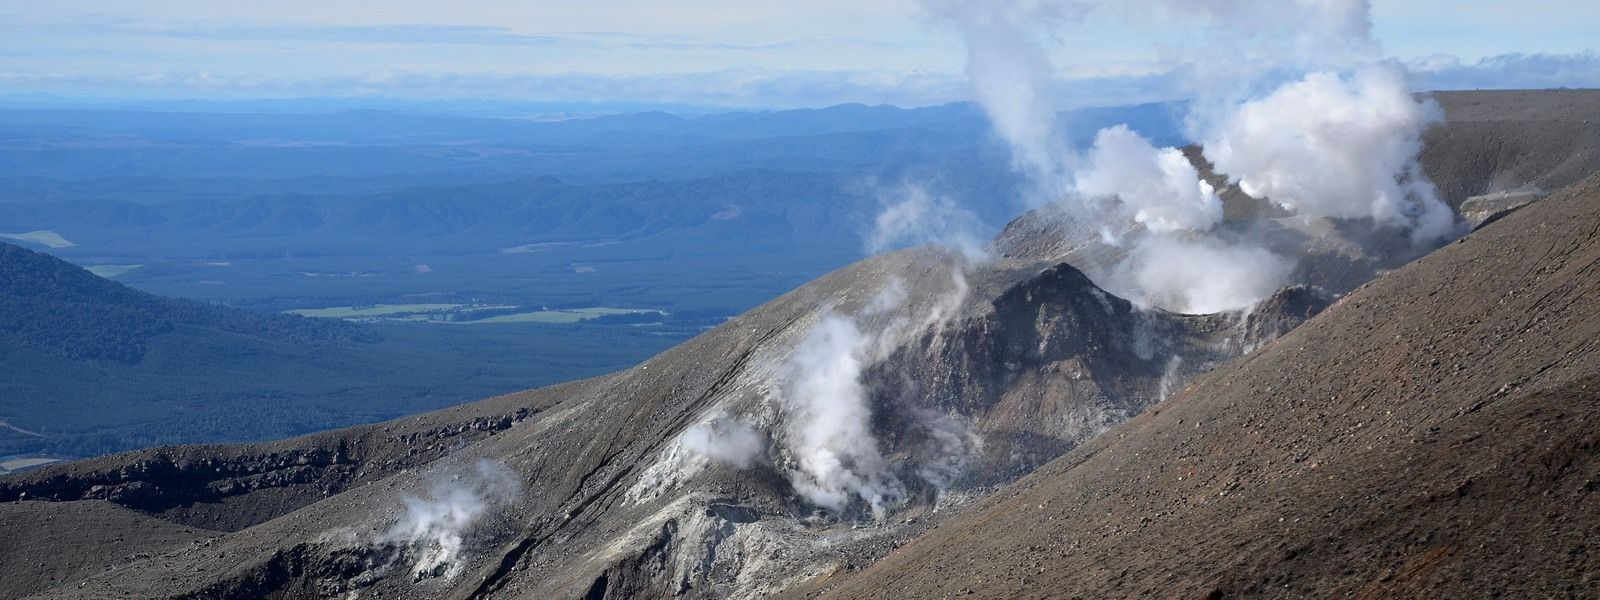 Views of Tongariro Crossing from above